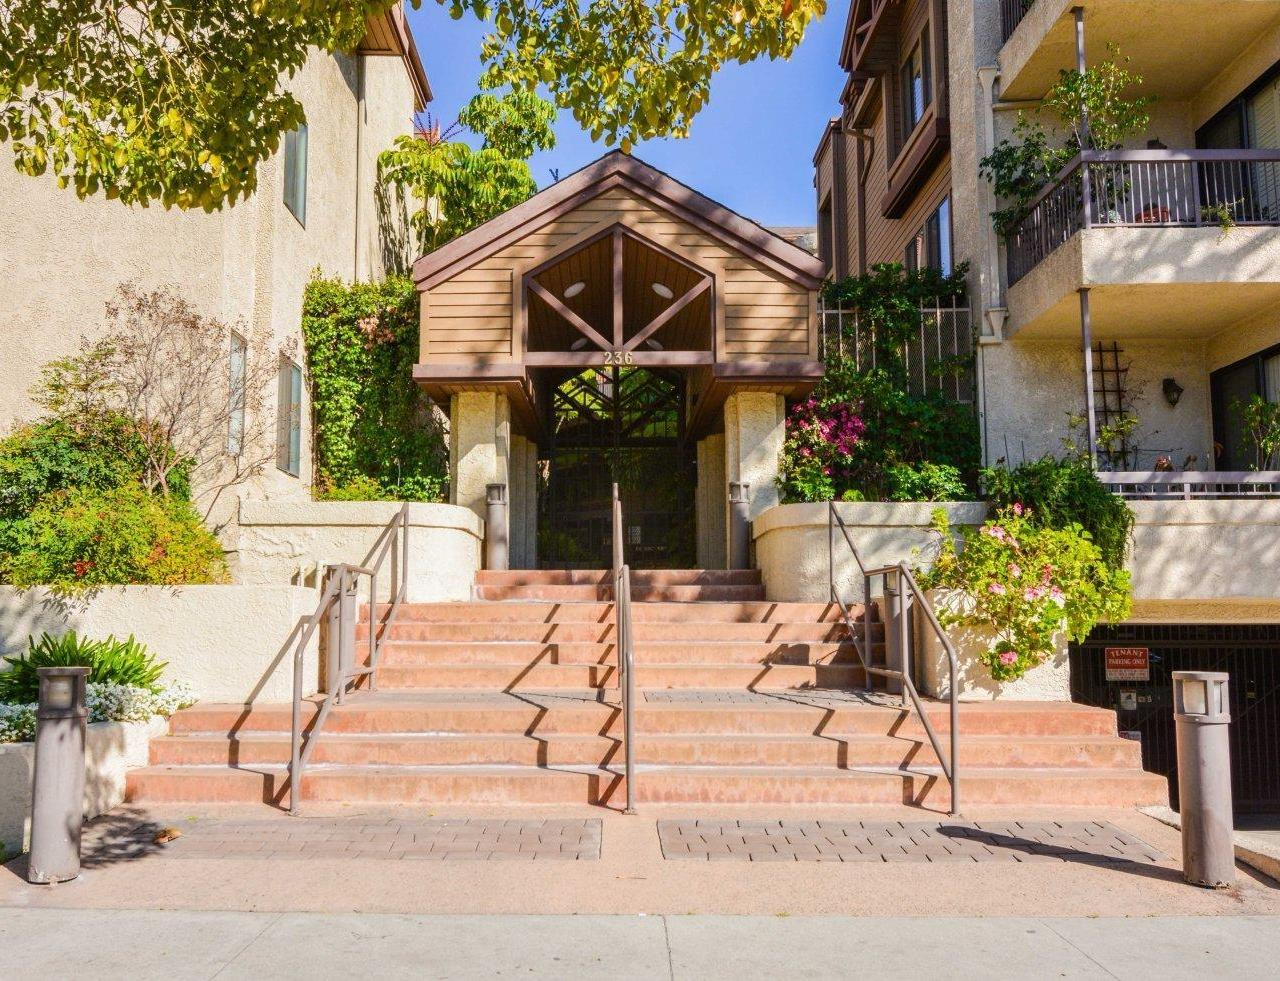 236 North Louise Street #109, Glendale, CA 91206